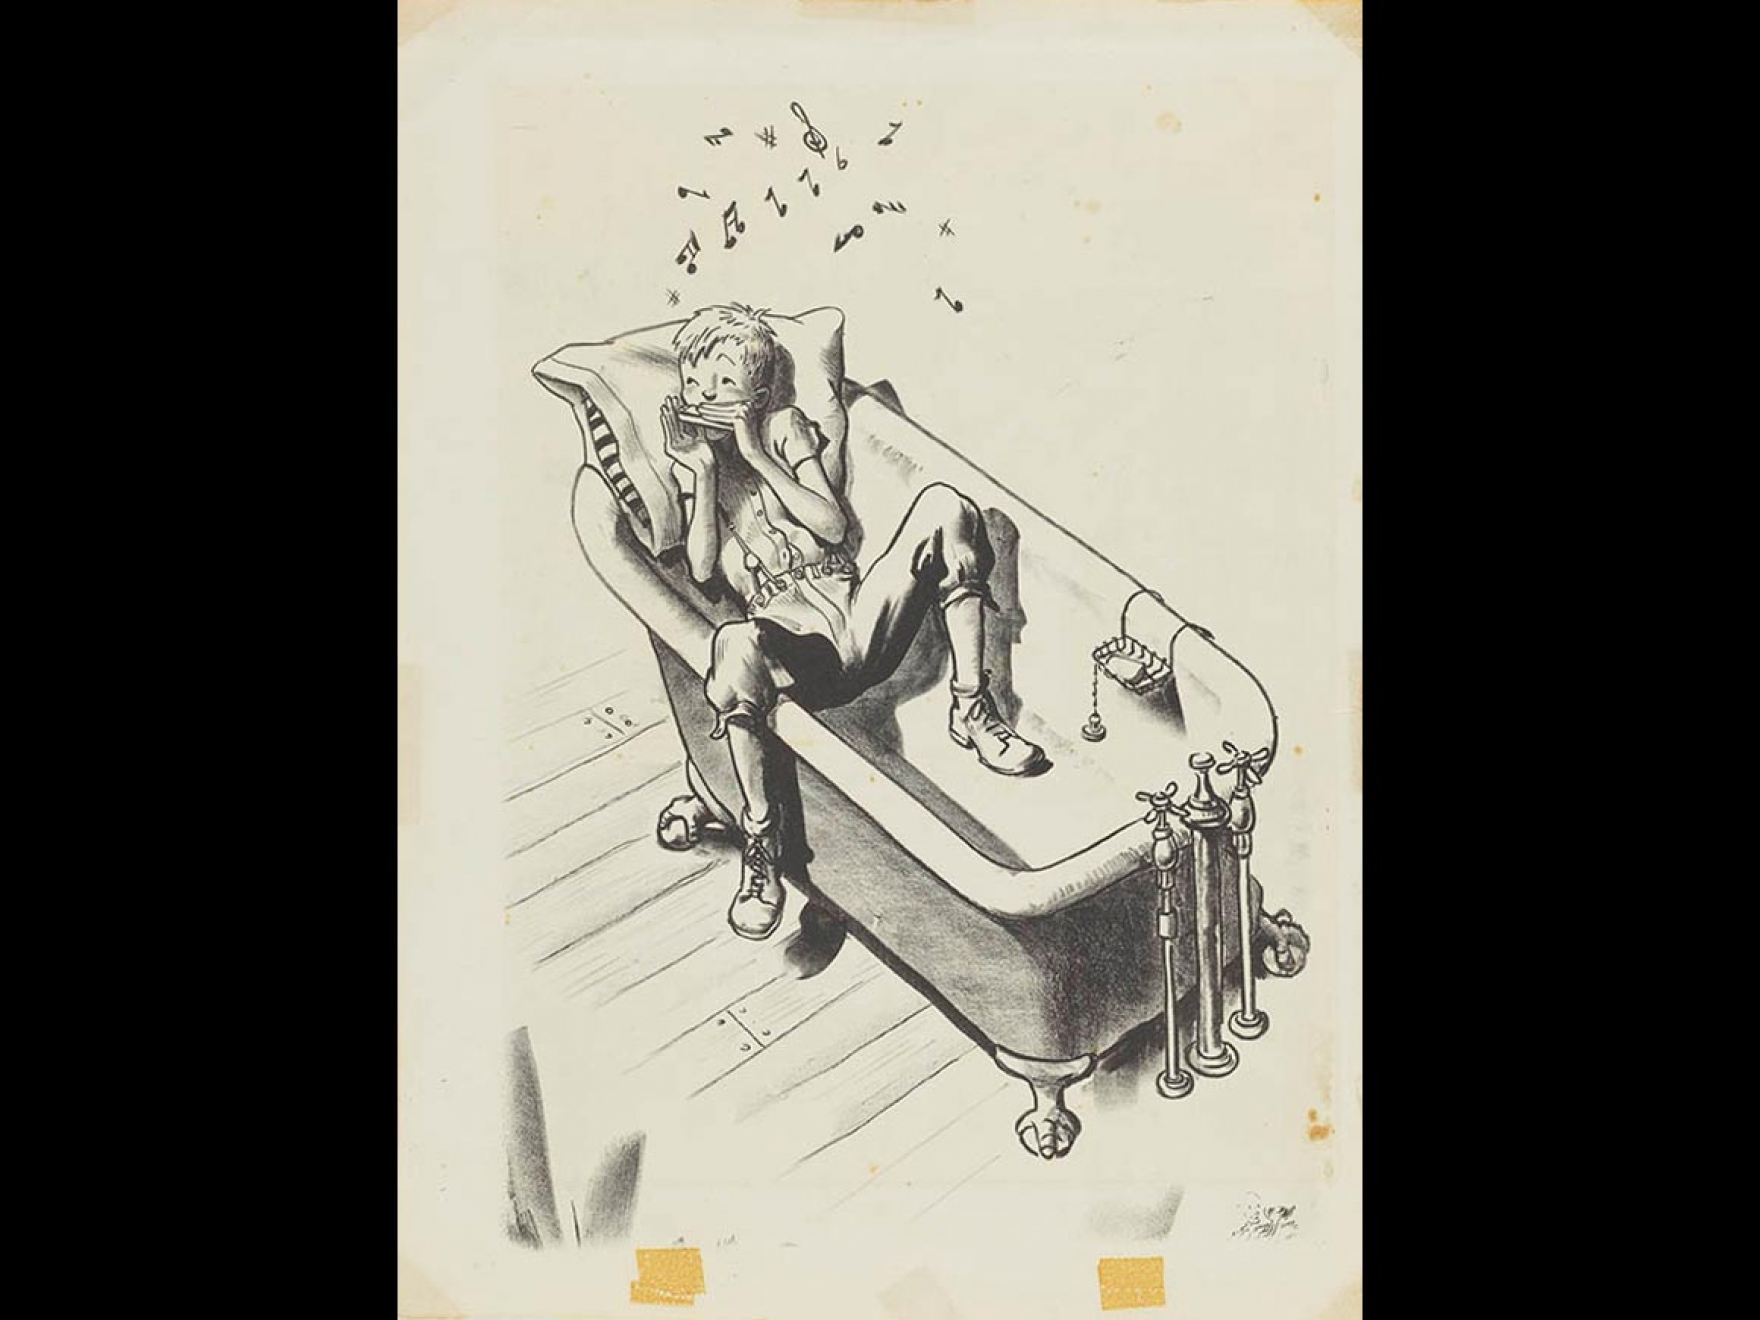 """Robert McCloskey's drawing for Lentil, """"His favorite place to practice was in the bathtub, because there the tone was improved one hundred percent"""""""